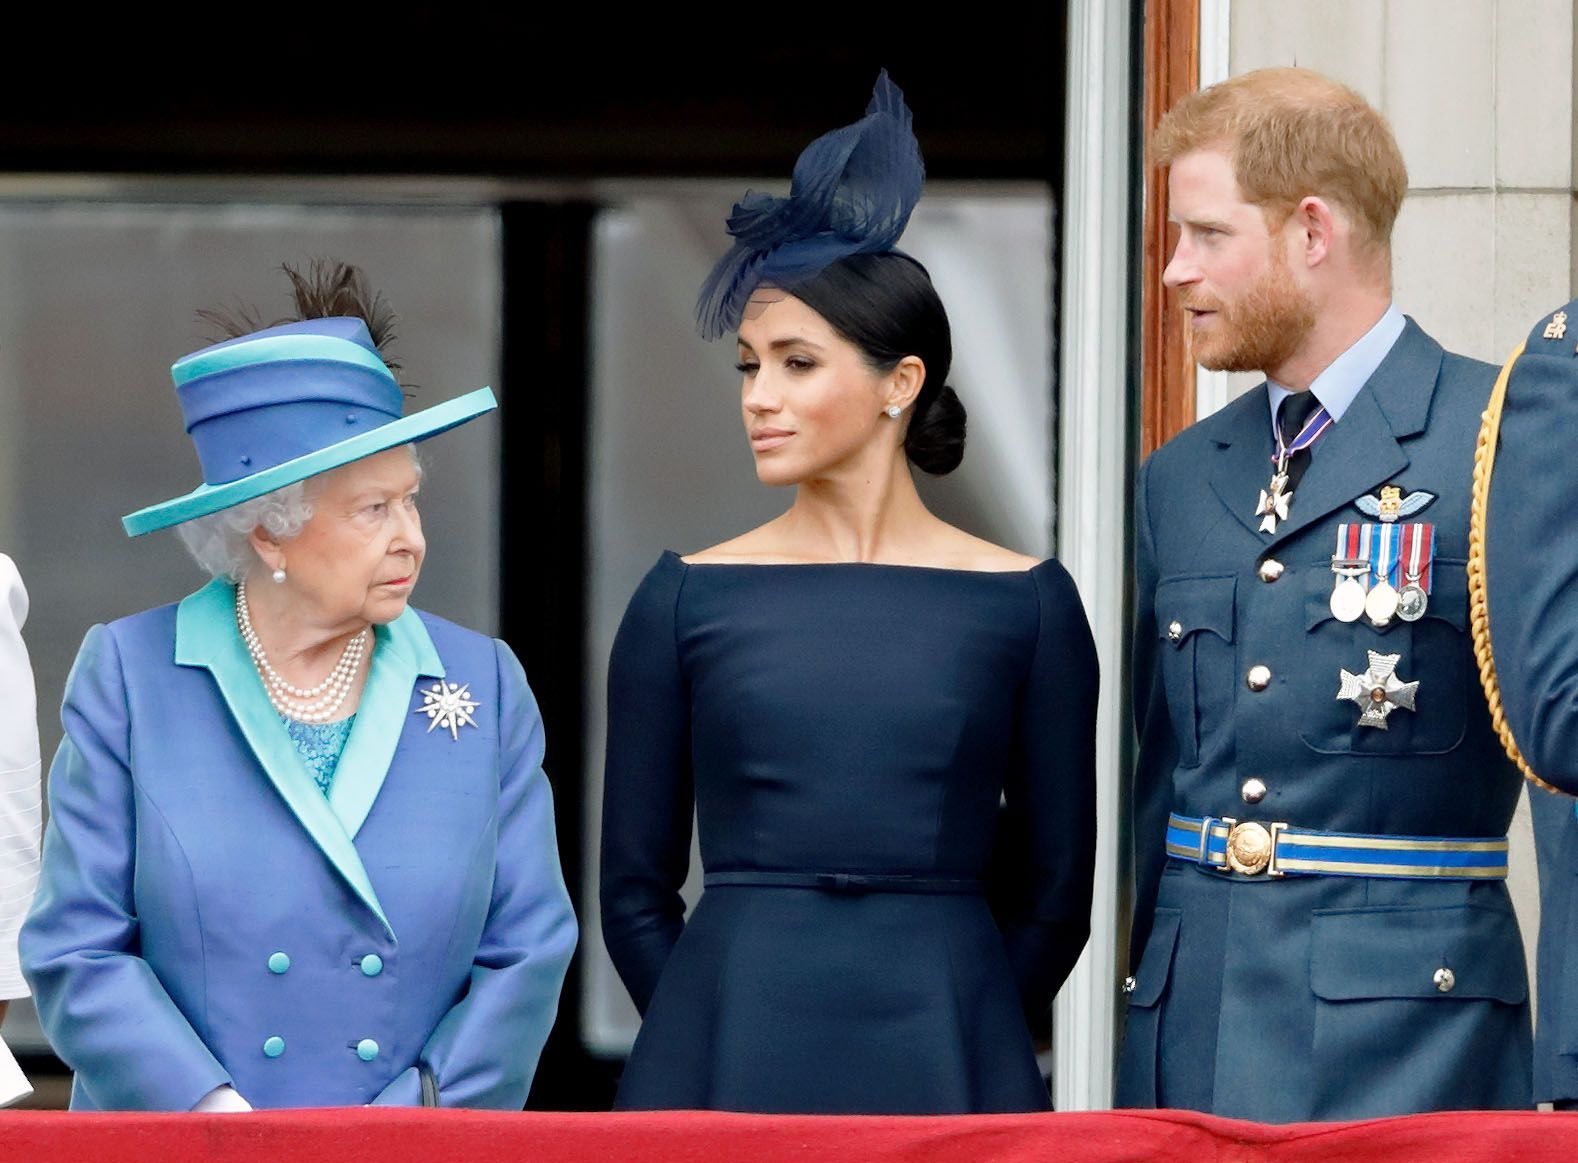 Is Prince Harry & Meghan Markle's Archewell Update a Jab at the Queen?